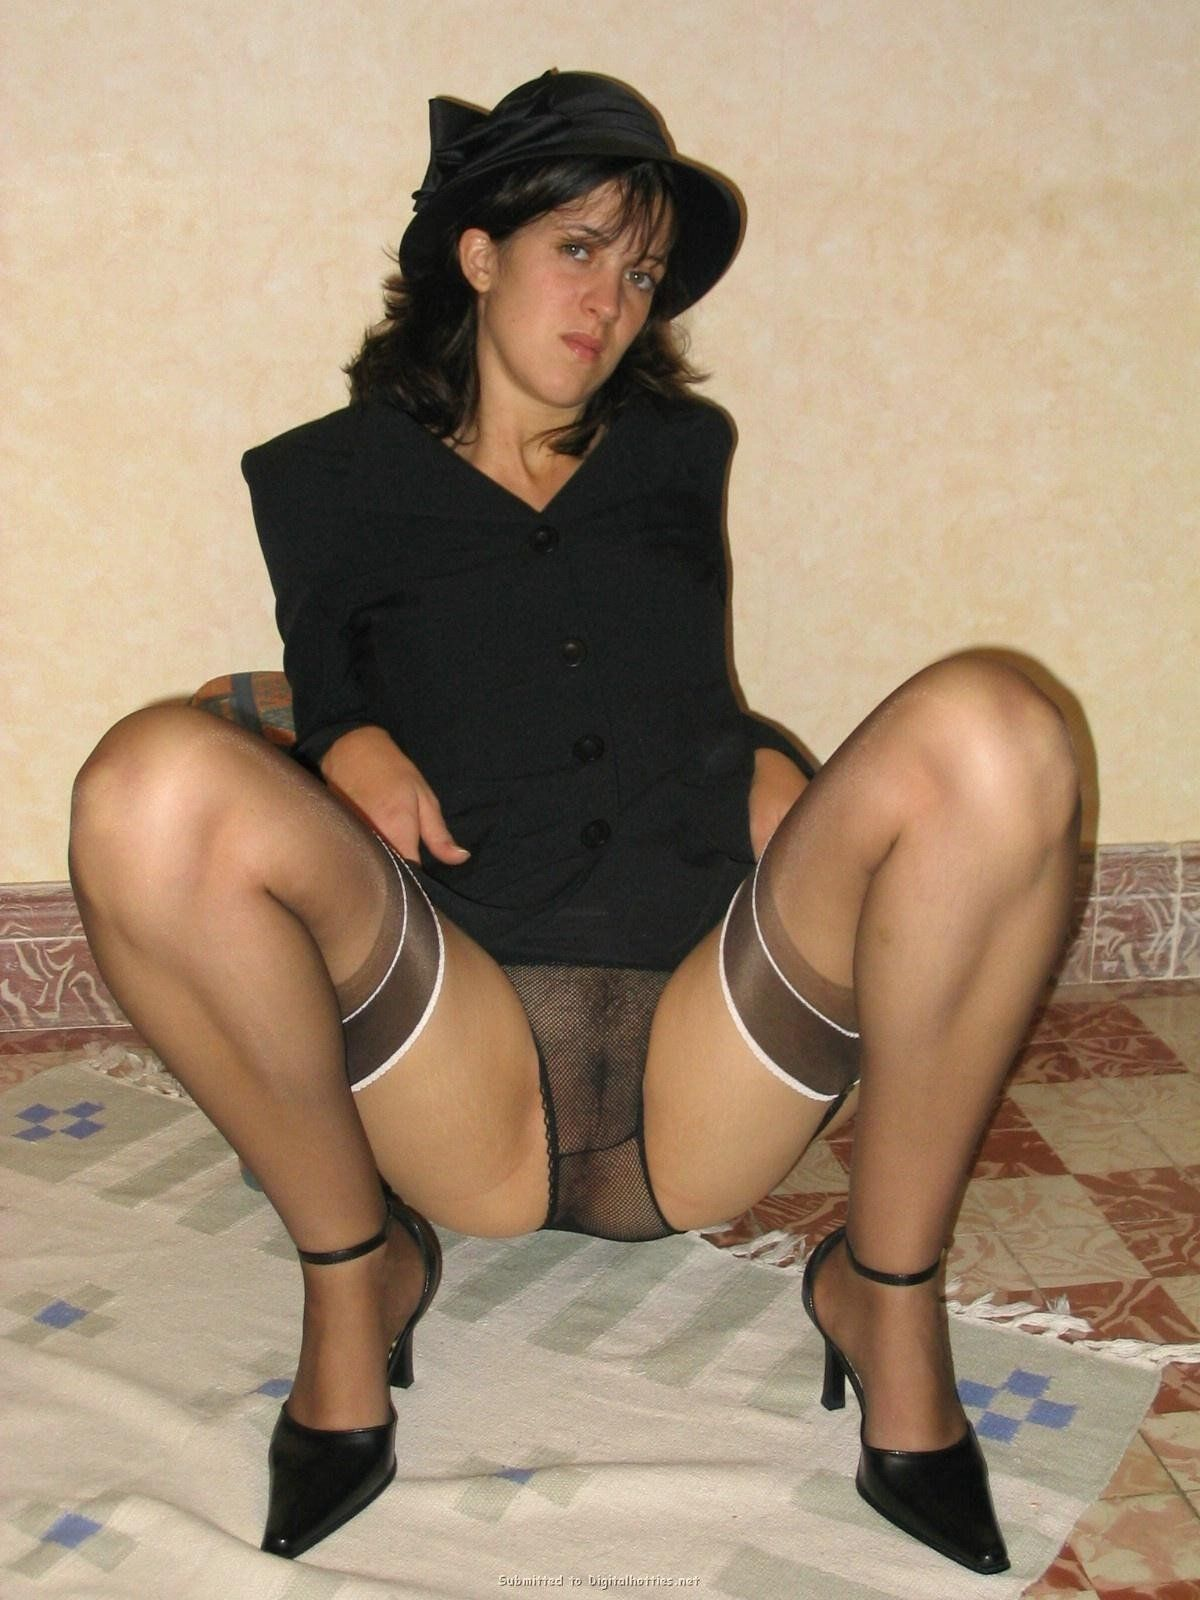 Would girl nude stockings russian for the